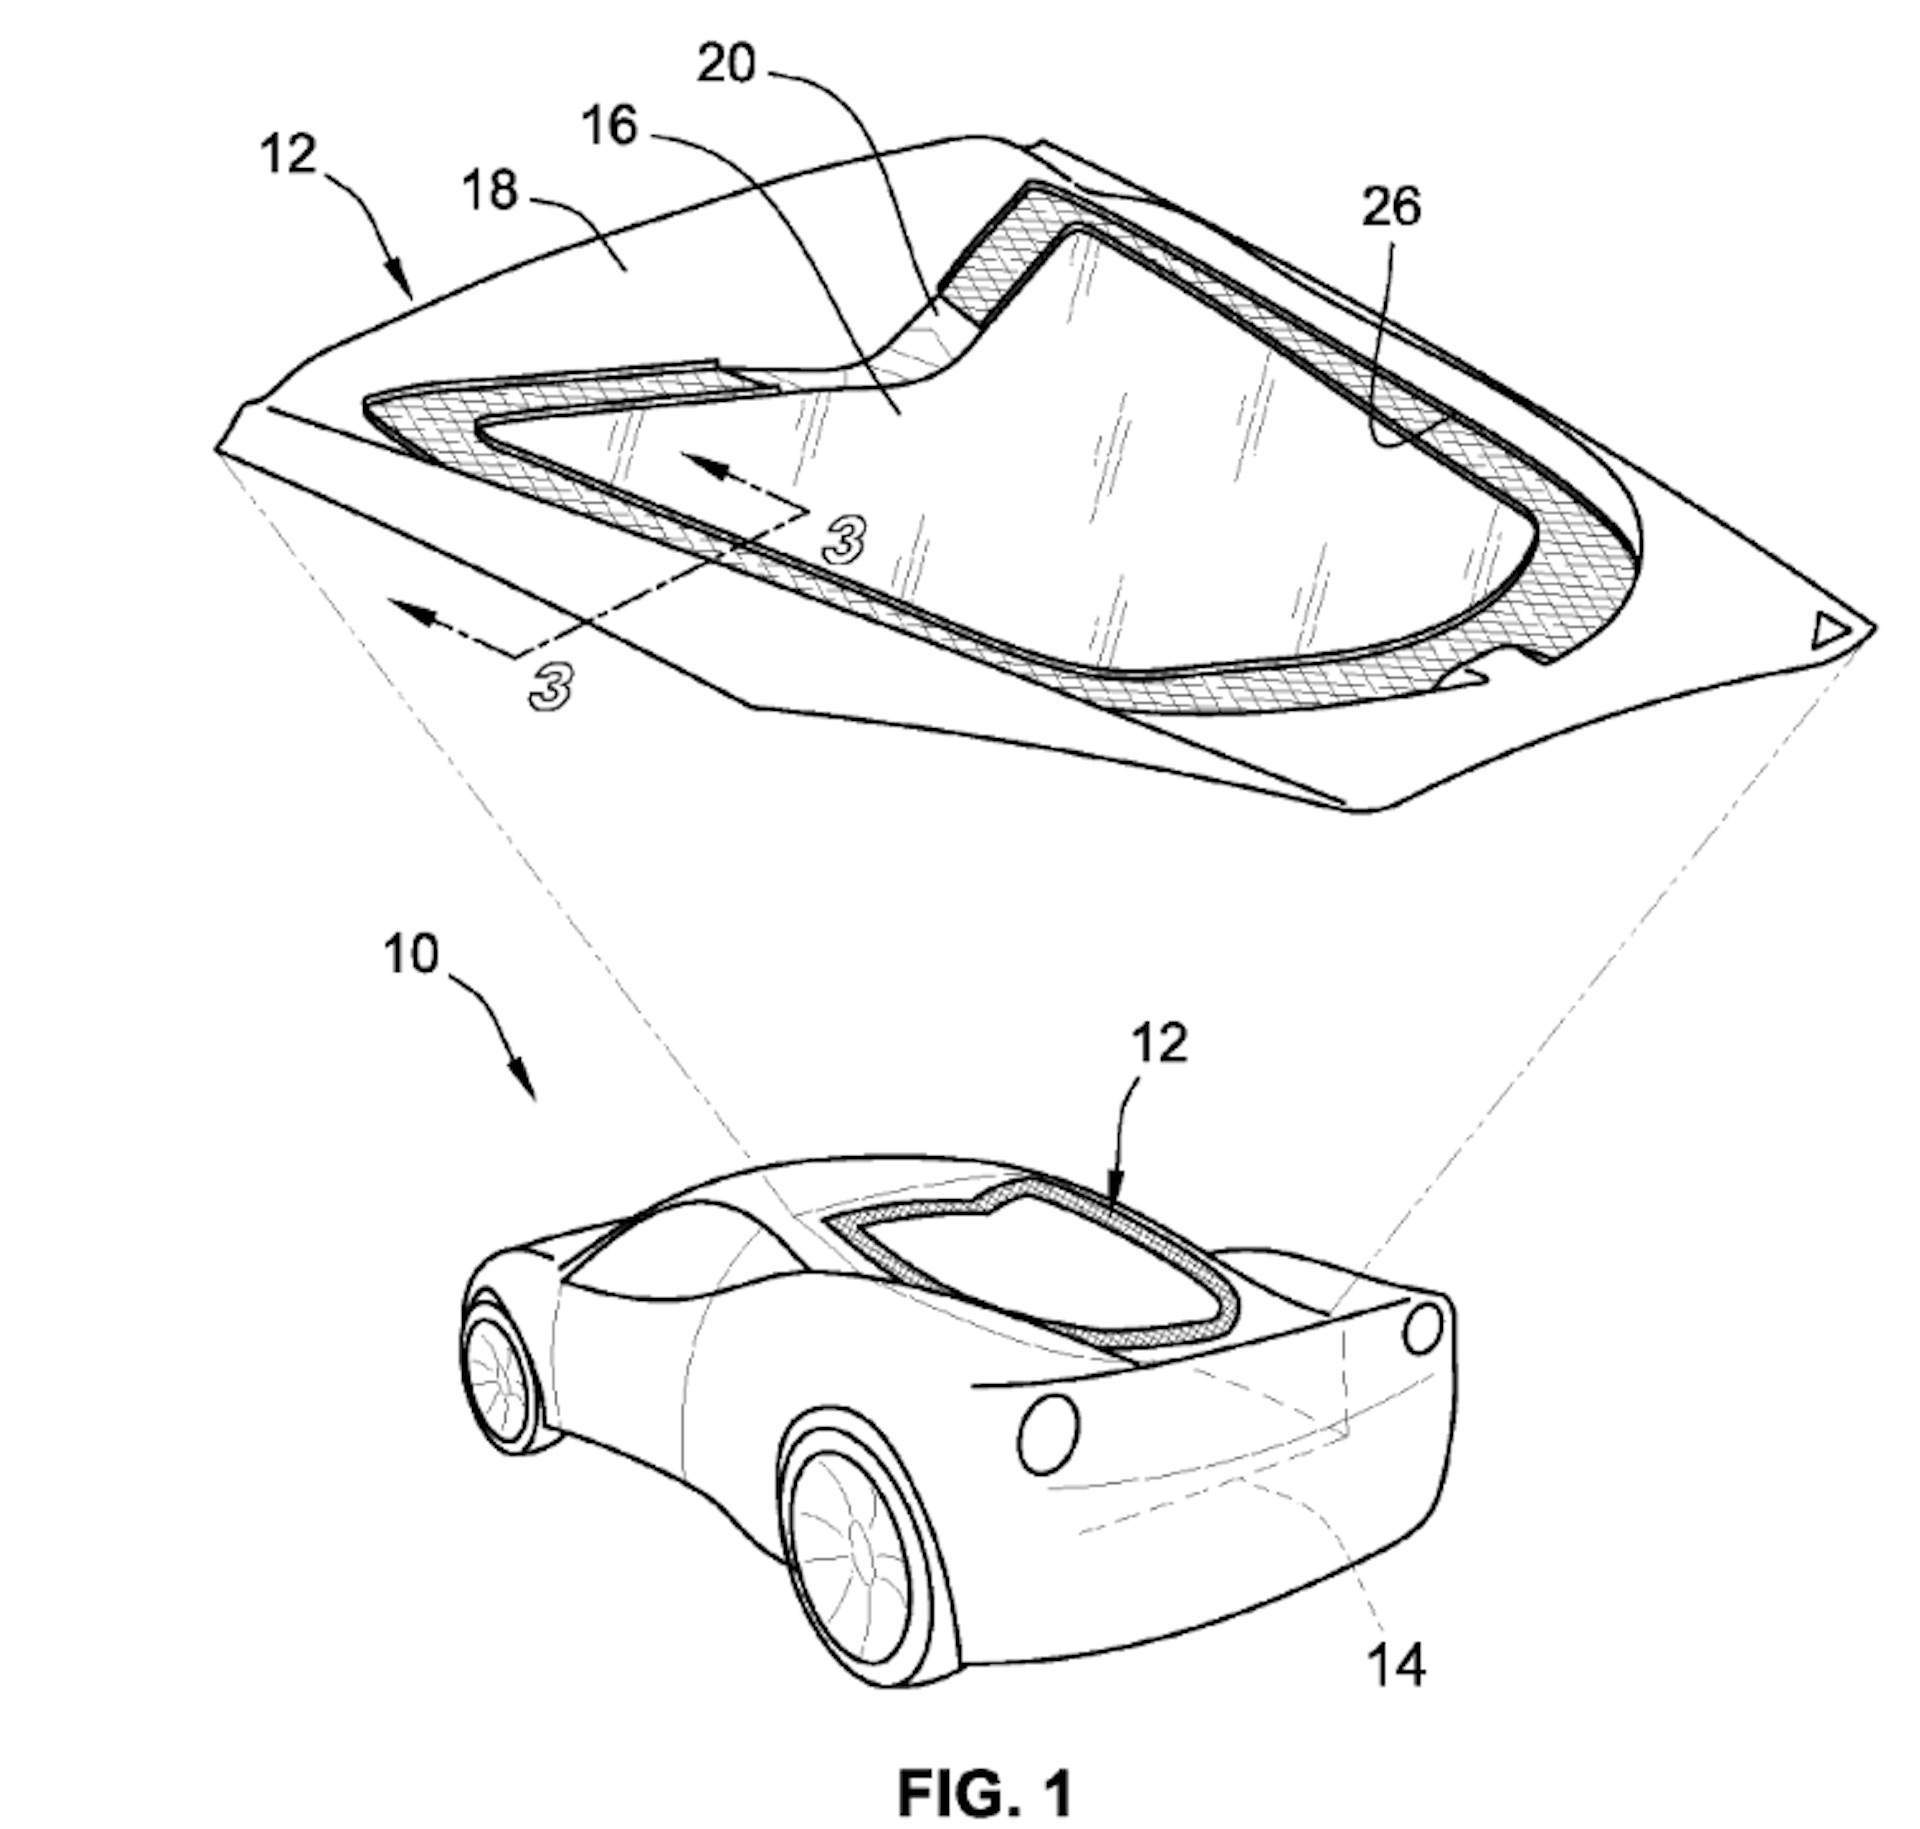 Gm Patents Mid Engine Corvette Hatch With Cooling Techniques